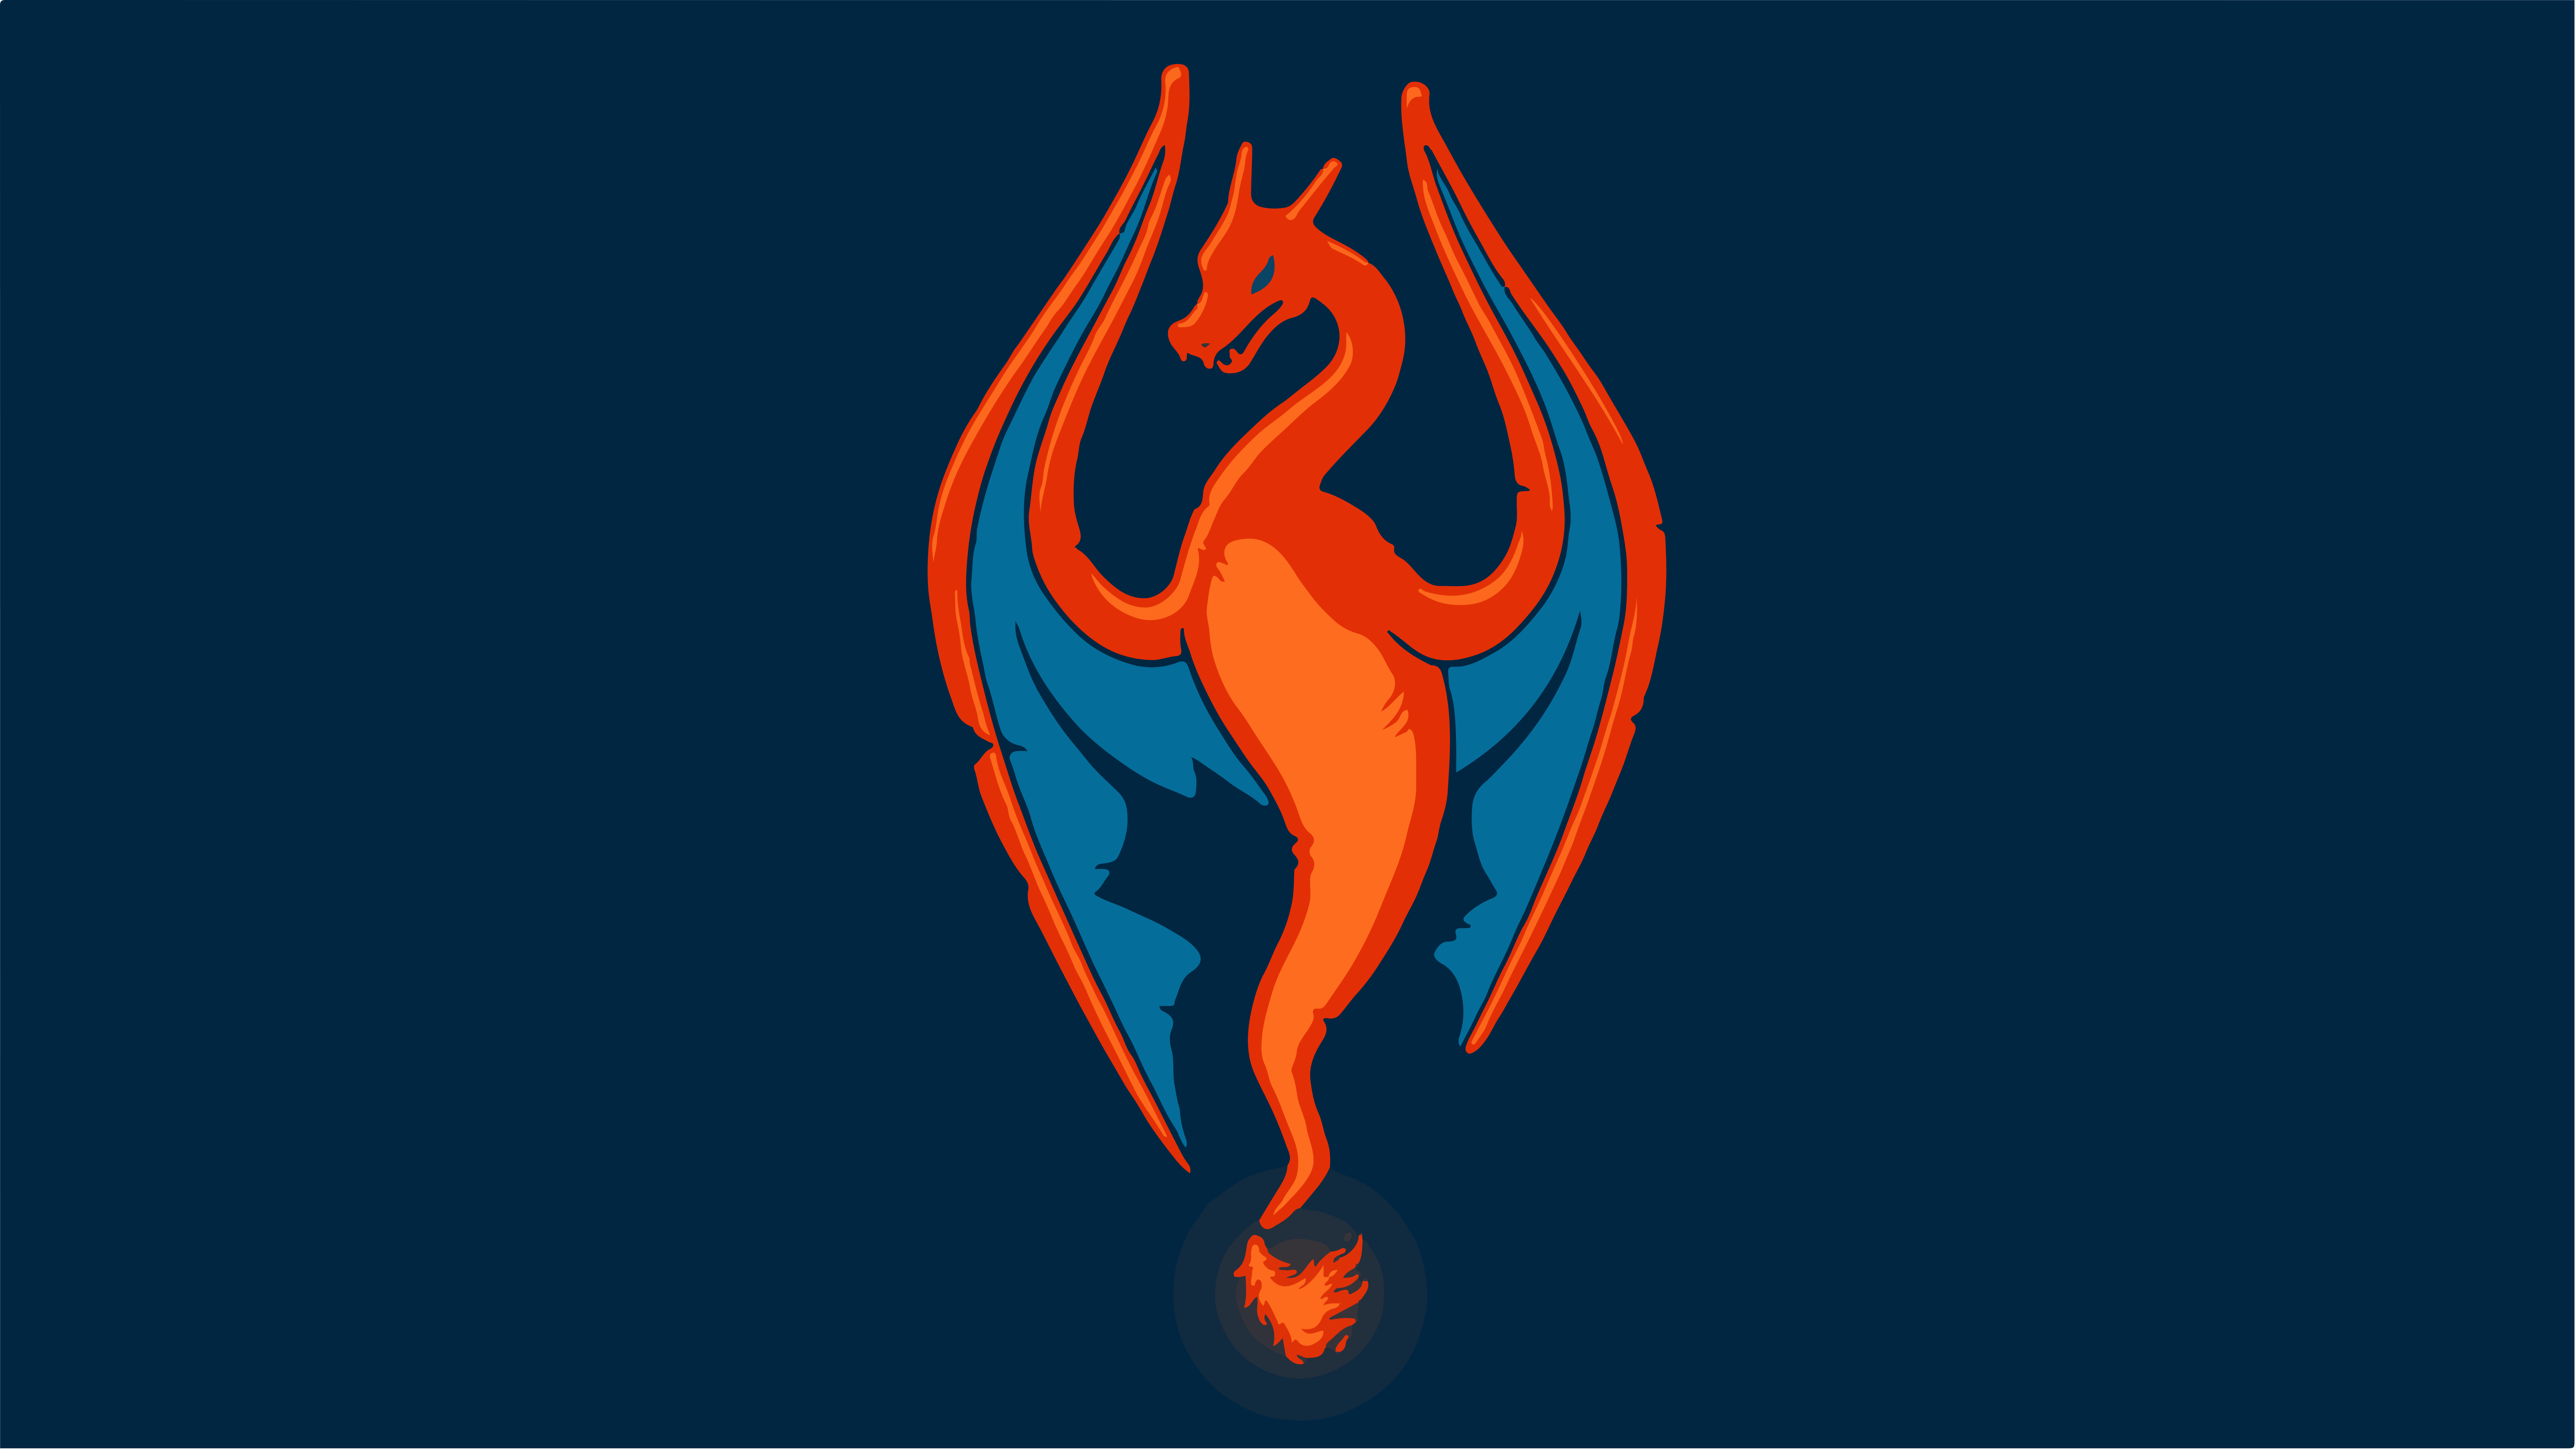 Charizard 8k Ultra HD Wallpaper and Background Image | 8004x4505 ...